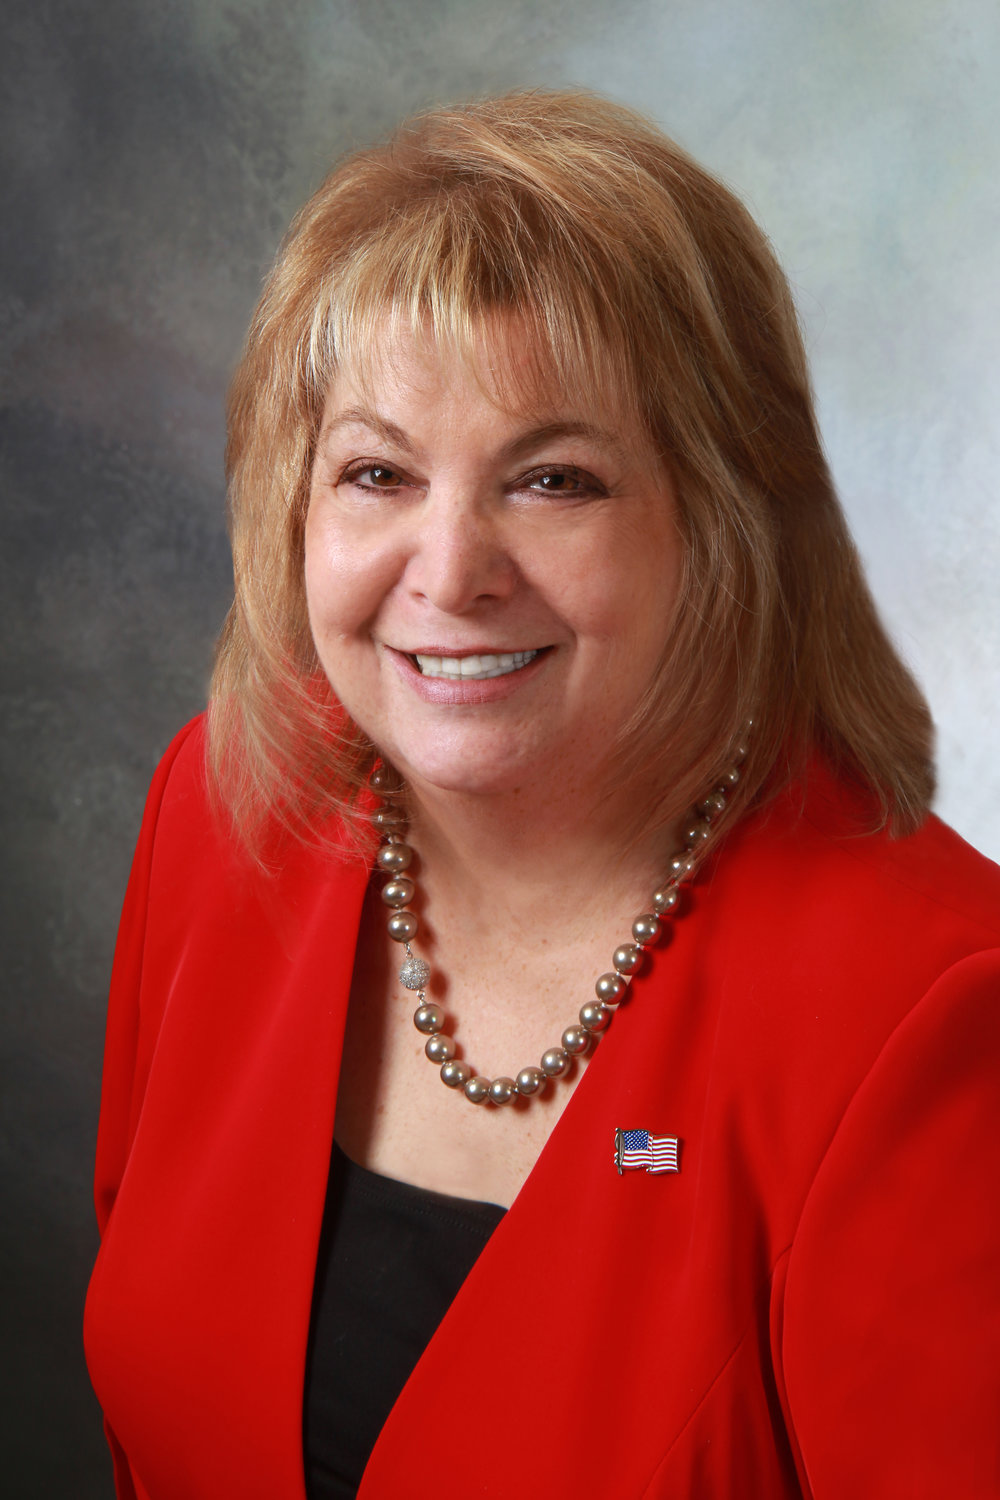 Woodmere resident Ann Schockett will become president of the National Federation of Republican Women in January.